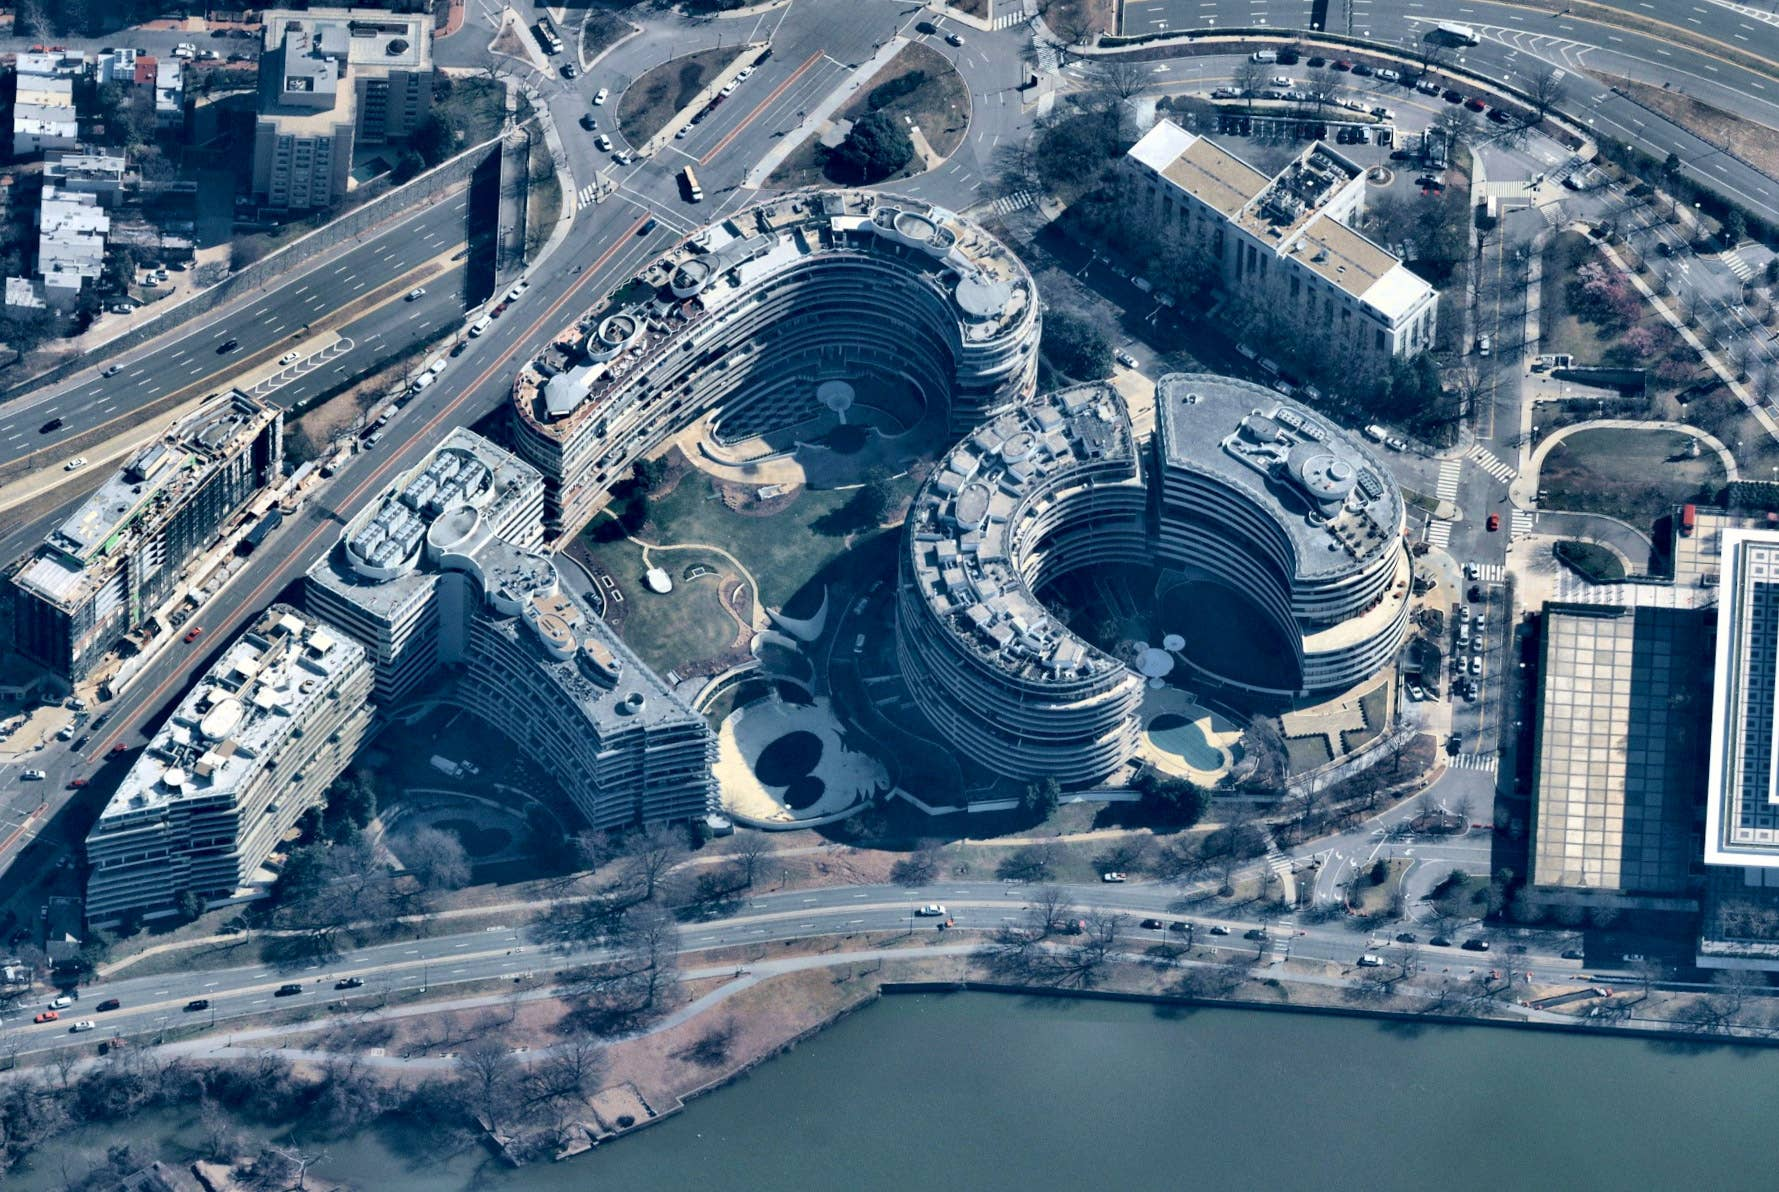 Aerial view, Watergate Hotel, Washington D.C. -- 5 March 2019